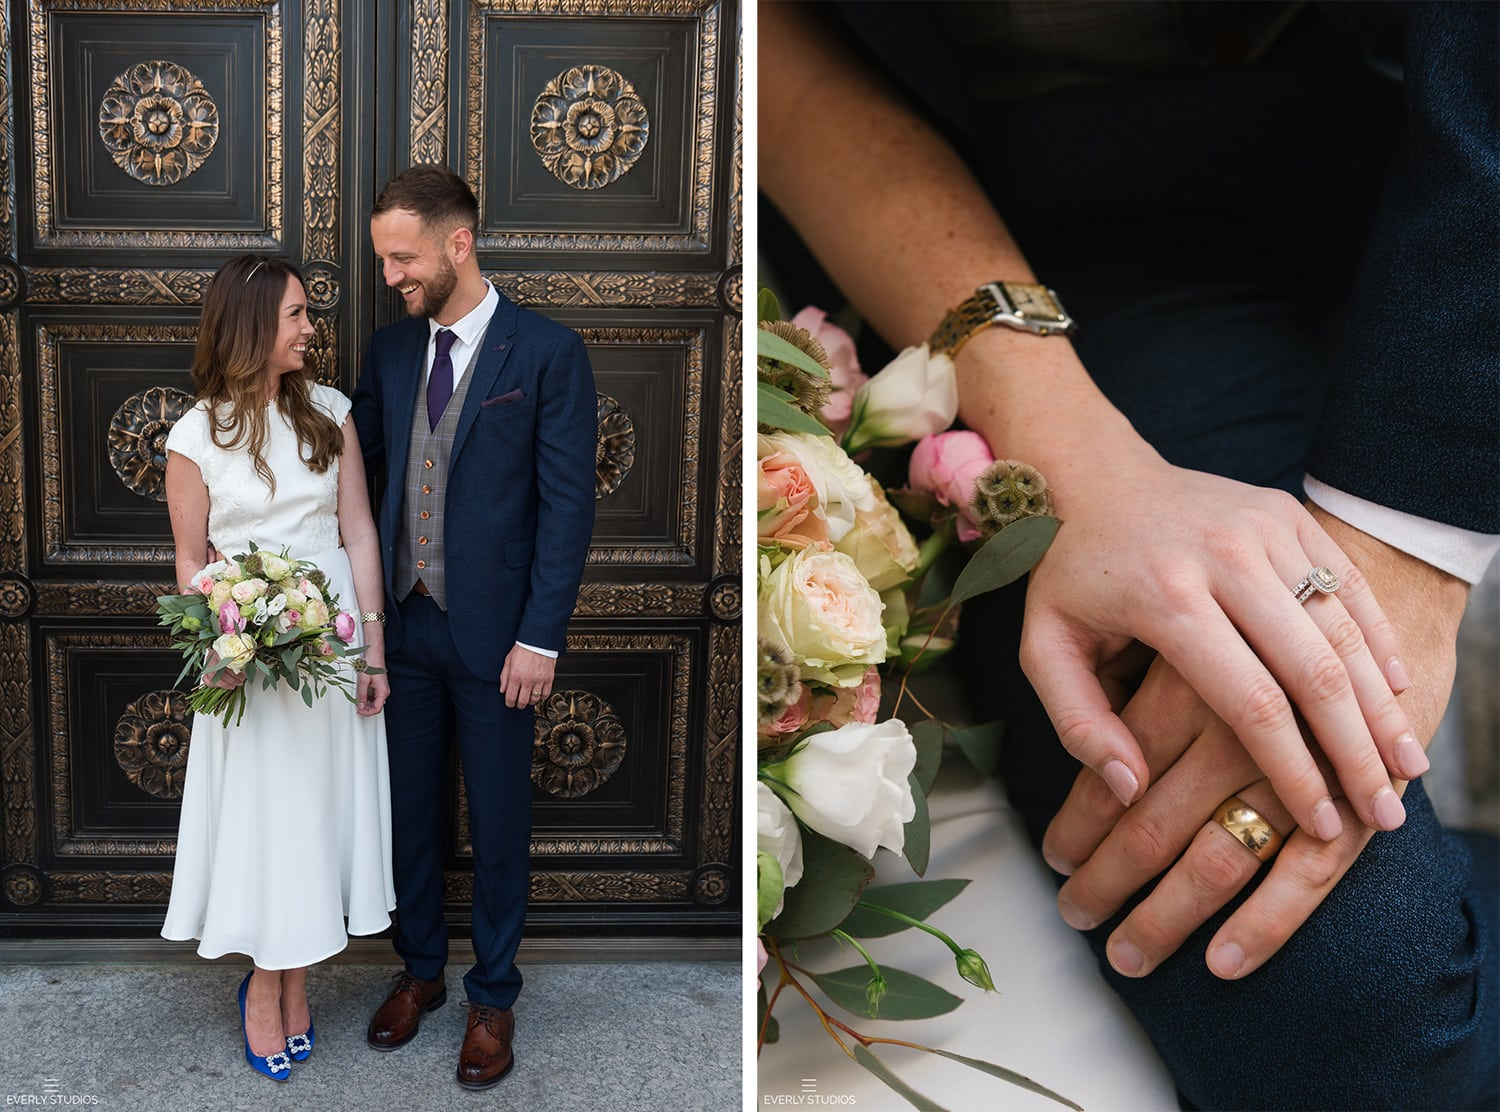 City Hall elopement in New York